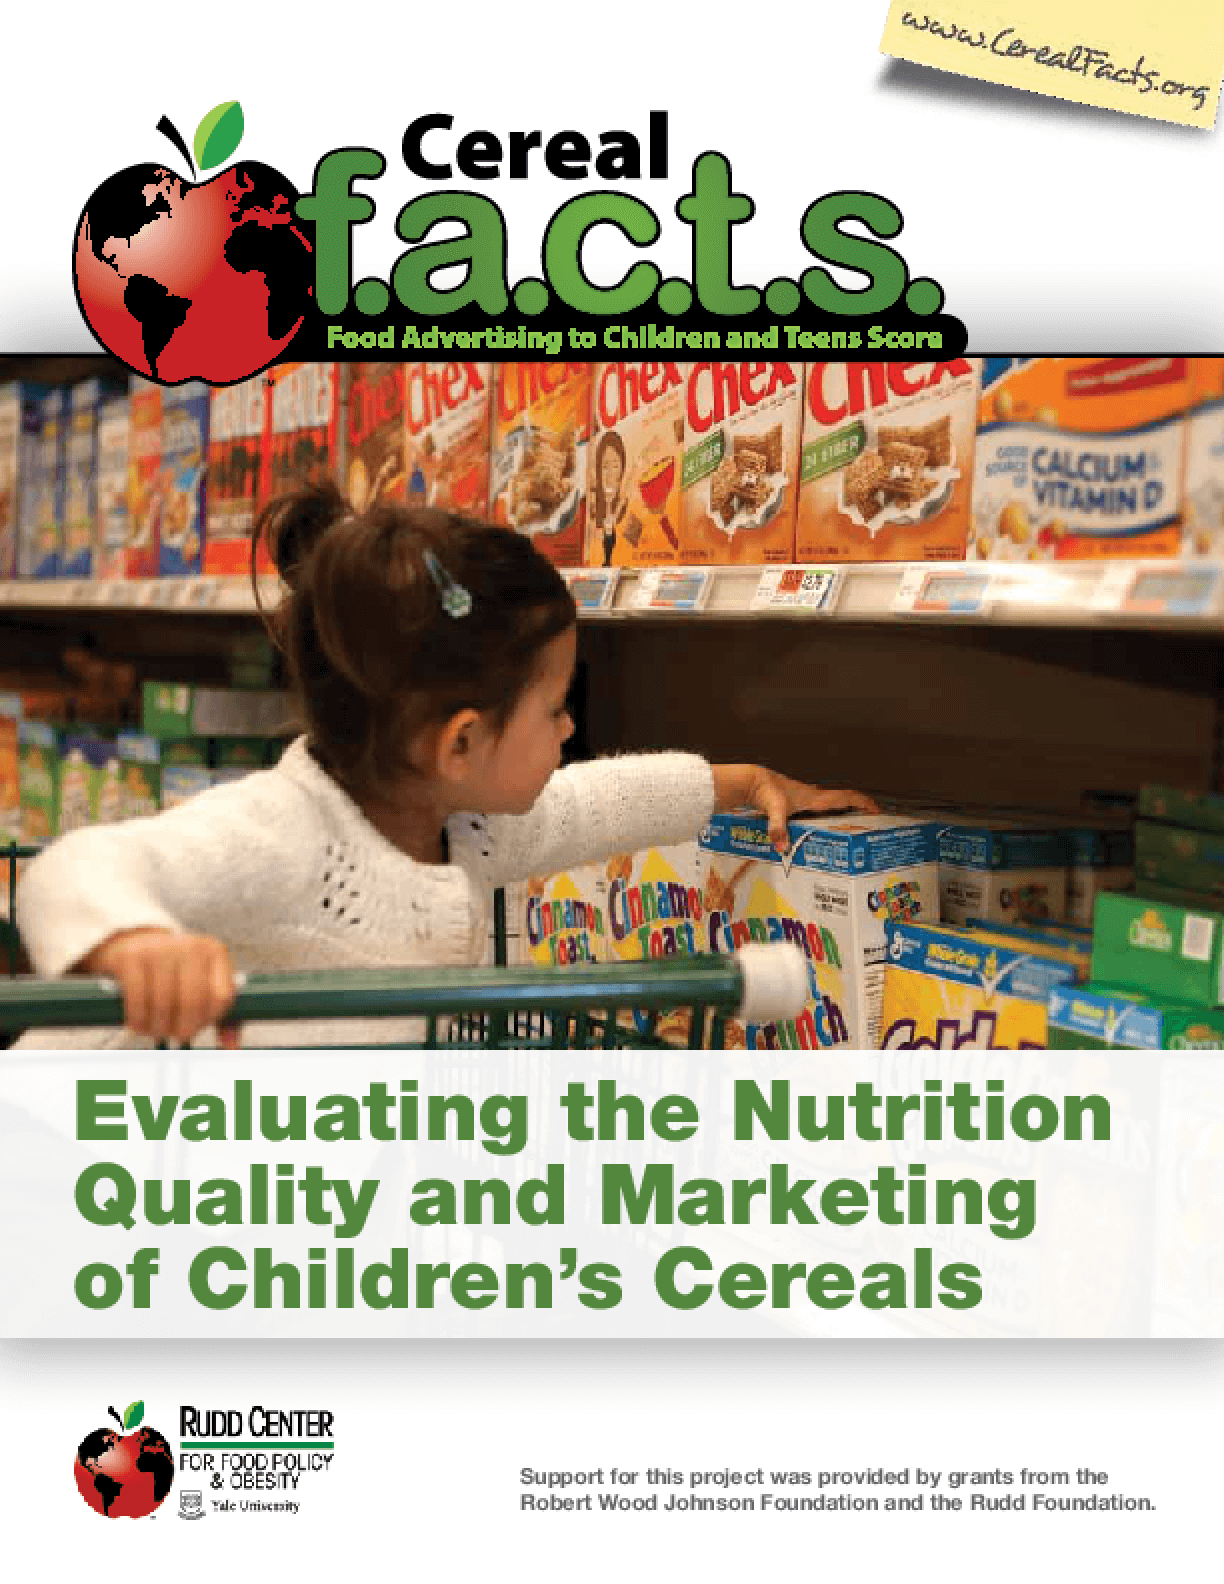 Cereal FACTS: Evaluating the Nutrition Quality and Marketing of Children's Cereals